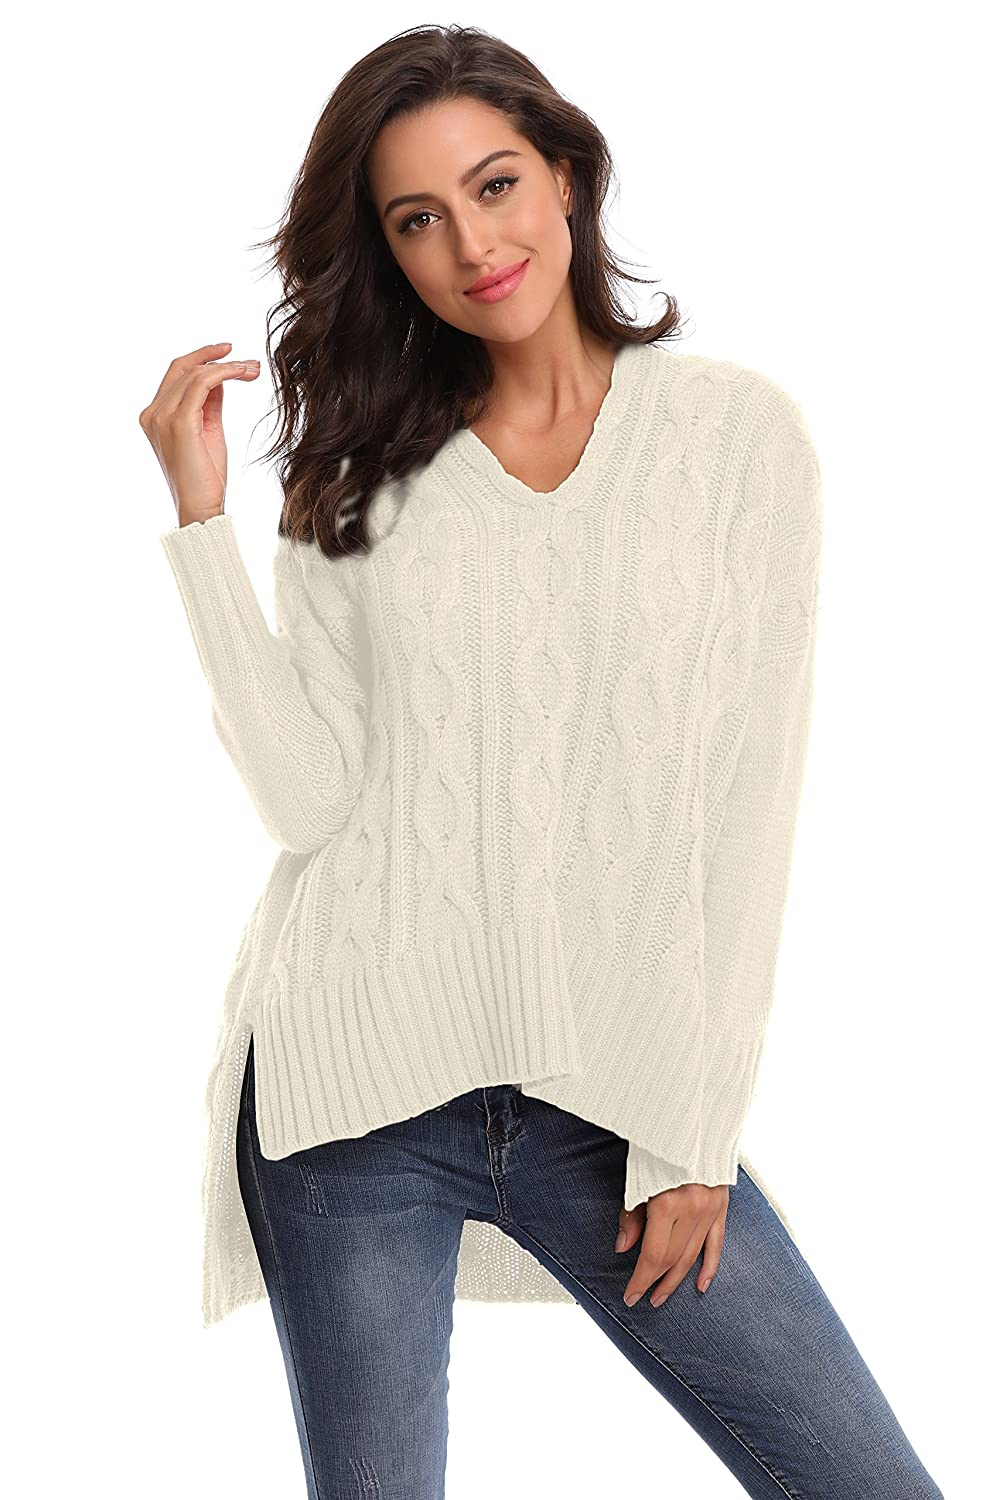 7eca0283268 Top 10 wholesale Cable Knit Pullover Sweater - Chinabrands.com